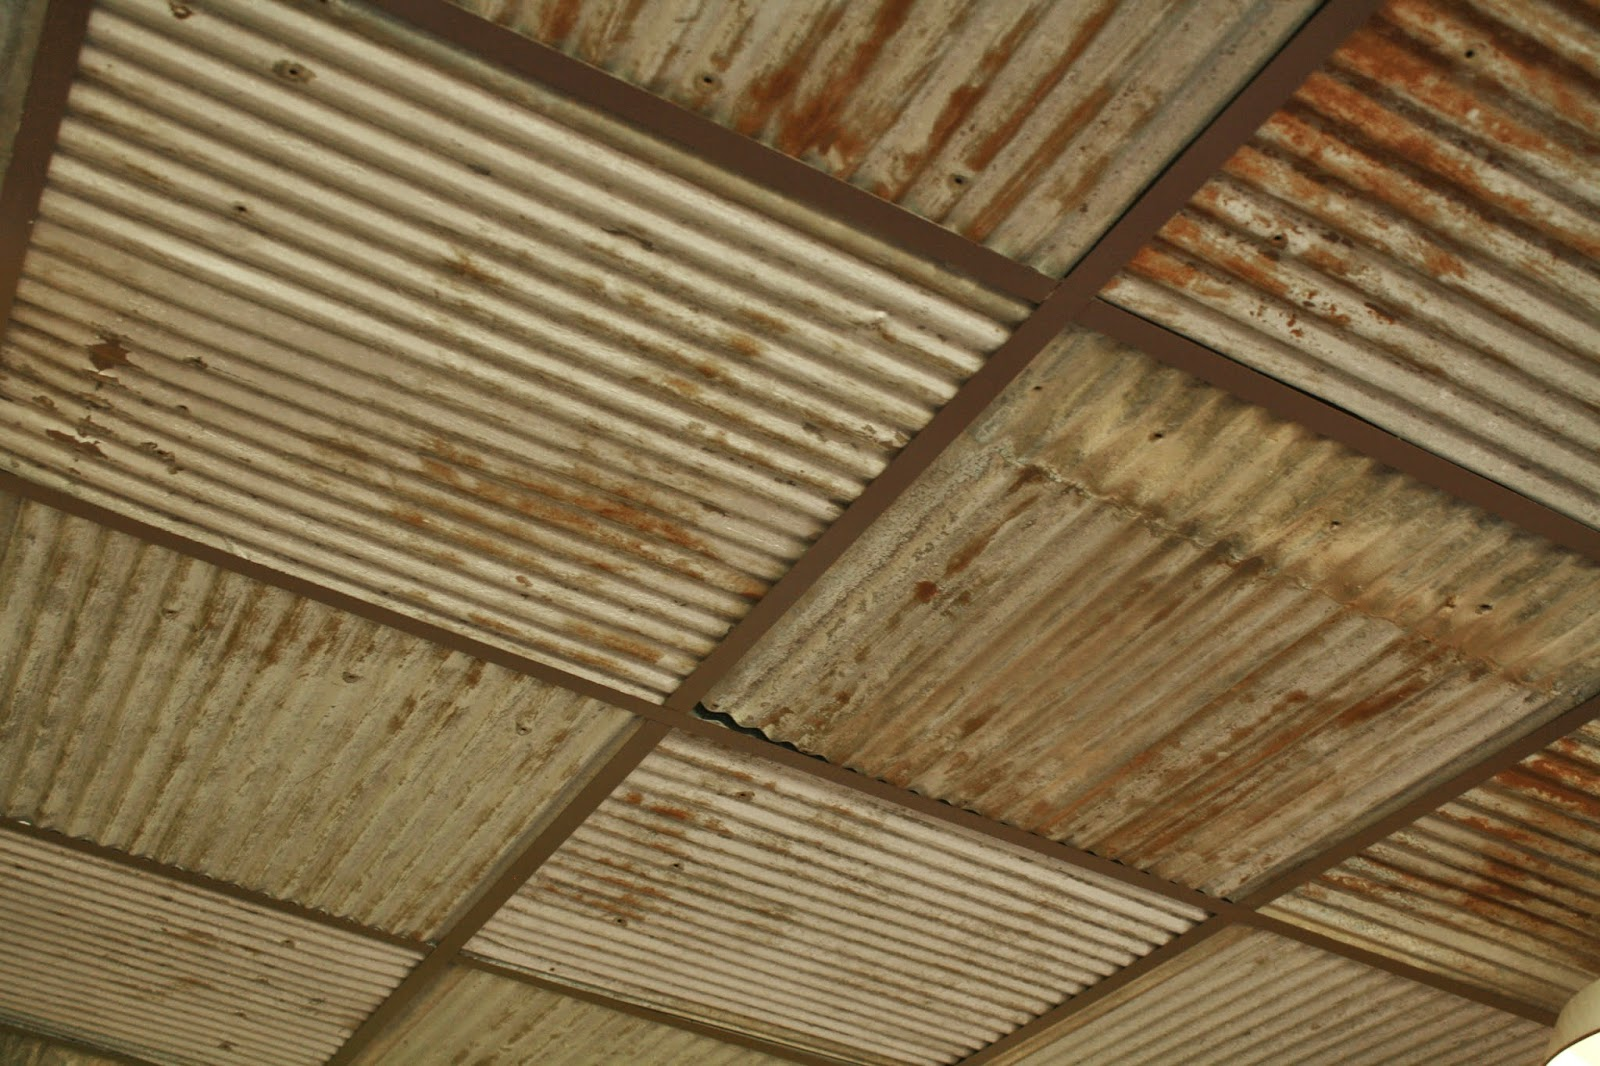 Rustic tin ceiling top coffered wood ceiling home office best antique reclaimed tin rusted tin rustic barn tin elmwood with rustic tin ceiling dailygadgetfo Gallery